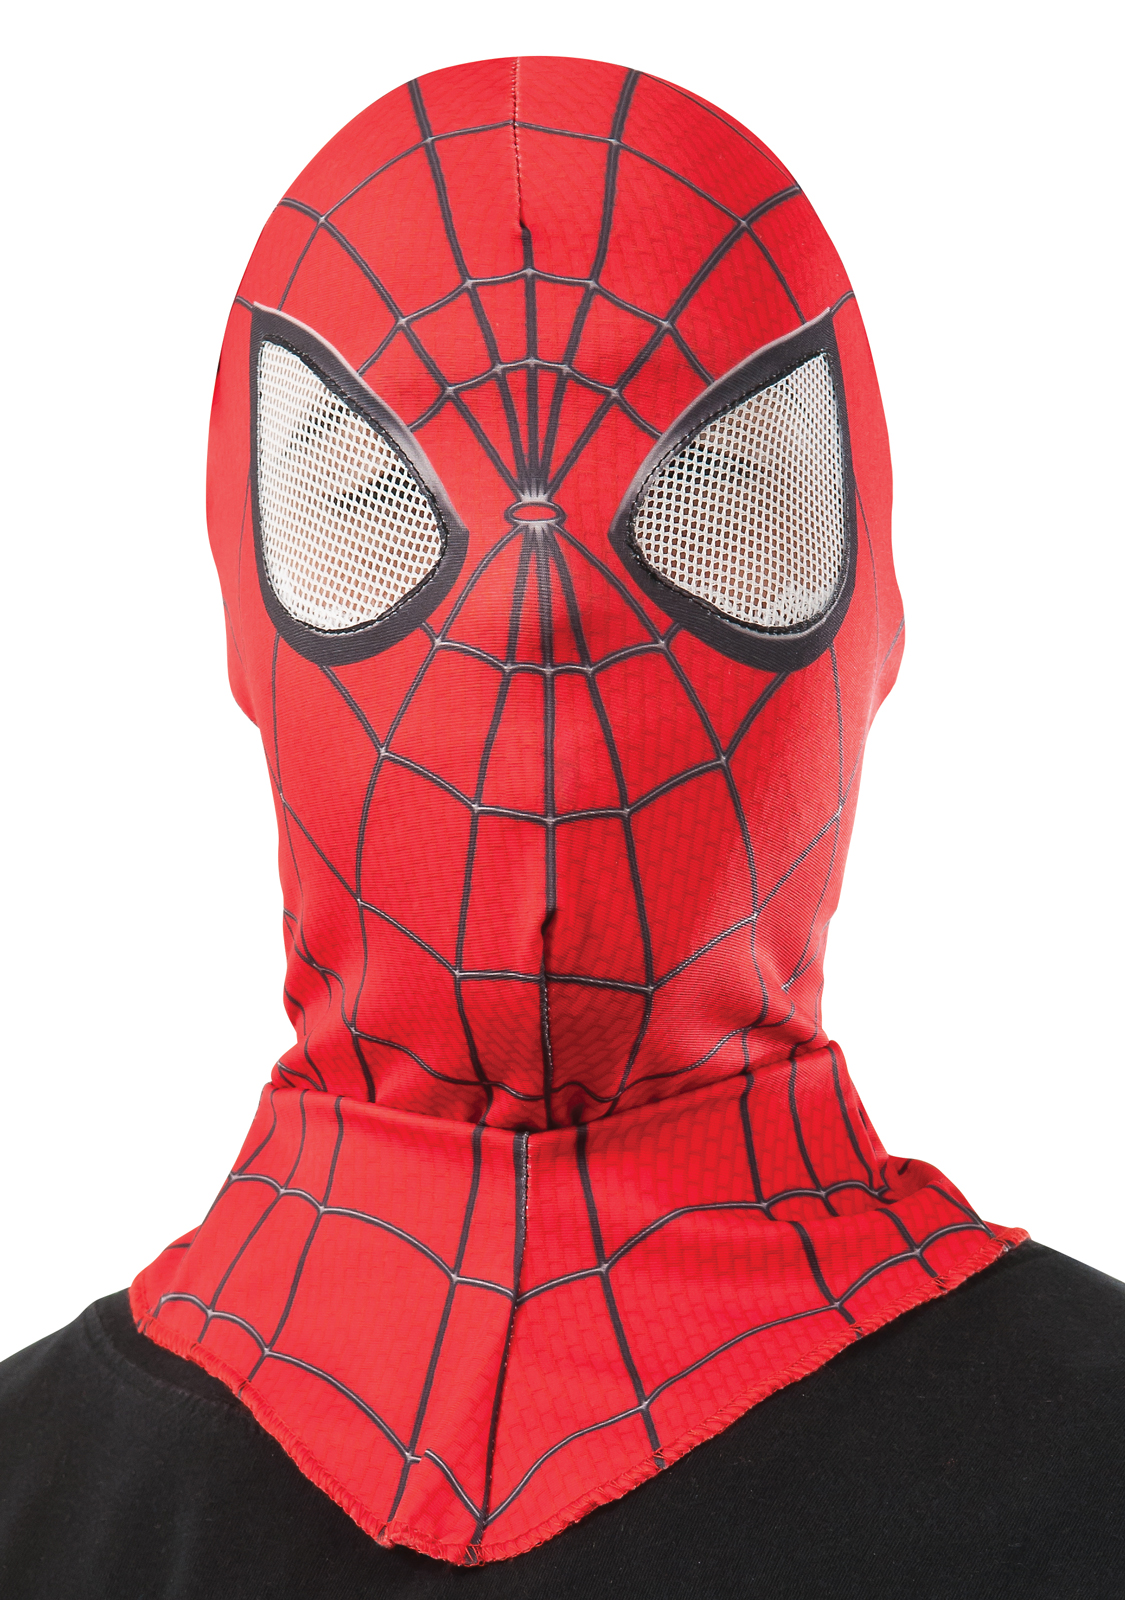 Men's Spider-man Adult Hood - Red - One-Size BS-242503